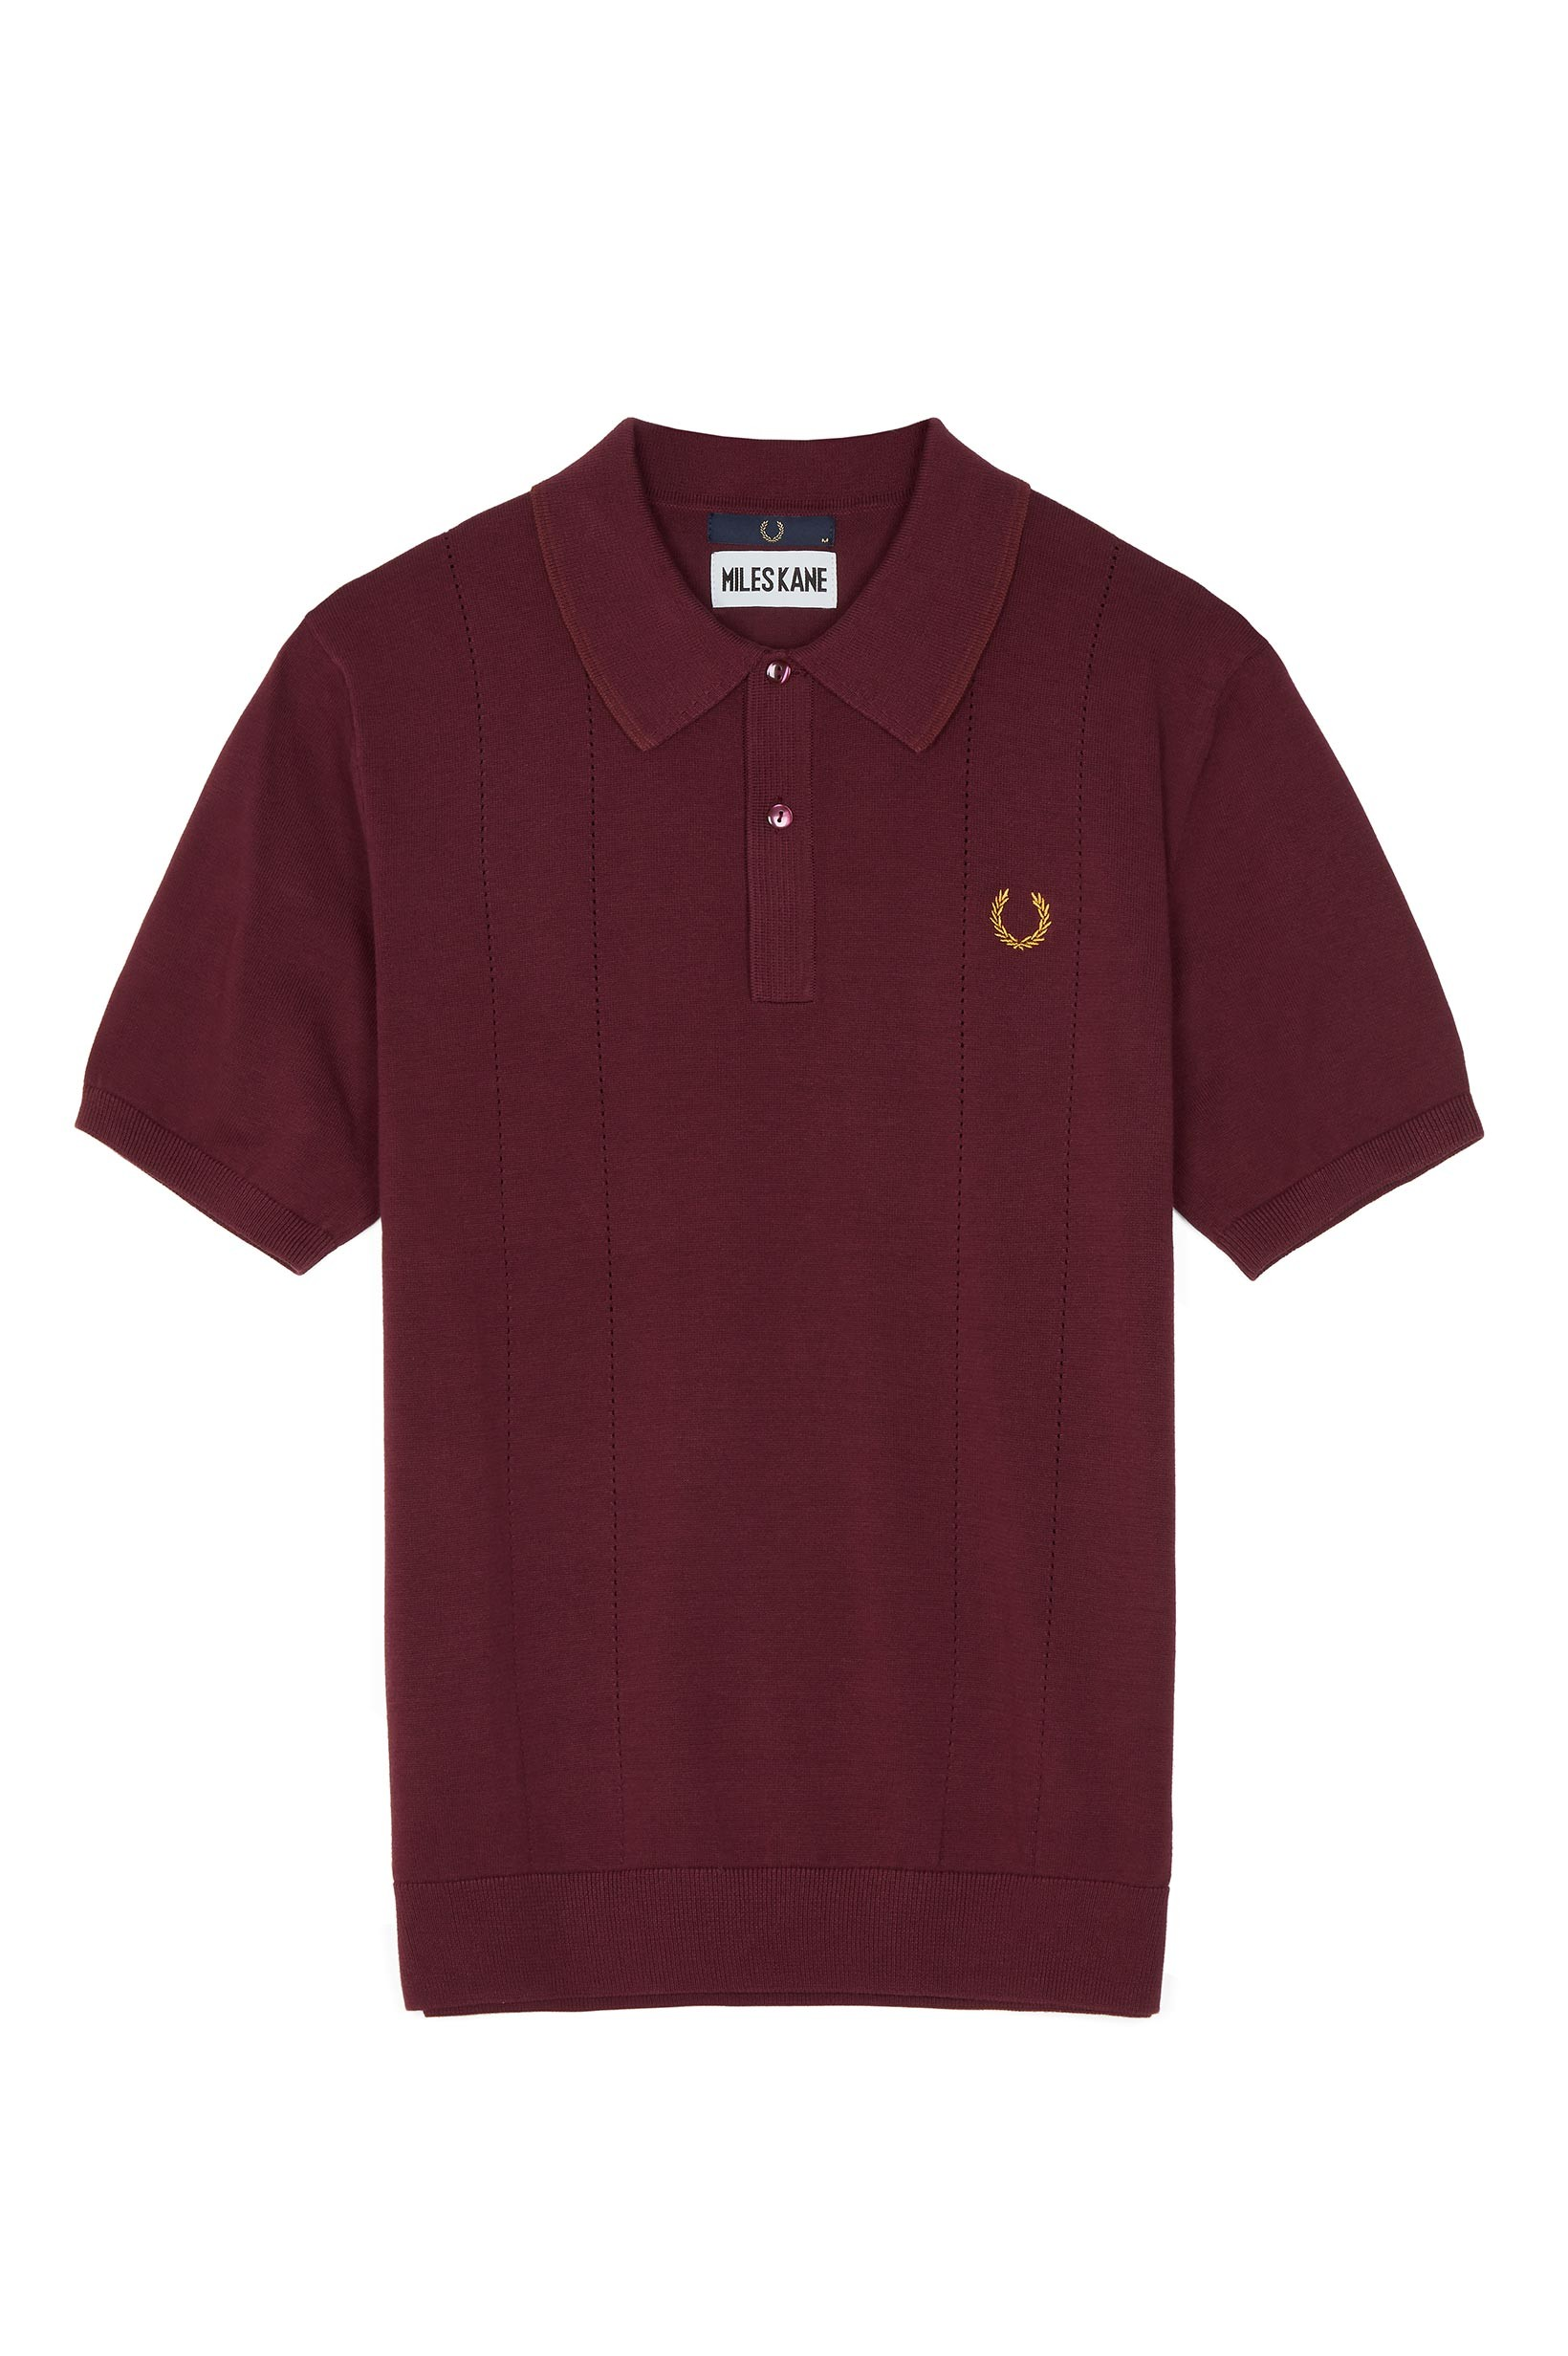 Fred Perry Mahogany Miles Kane Pointelle Knitted Shirt